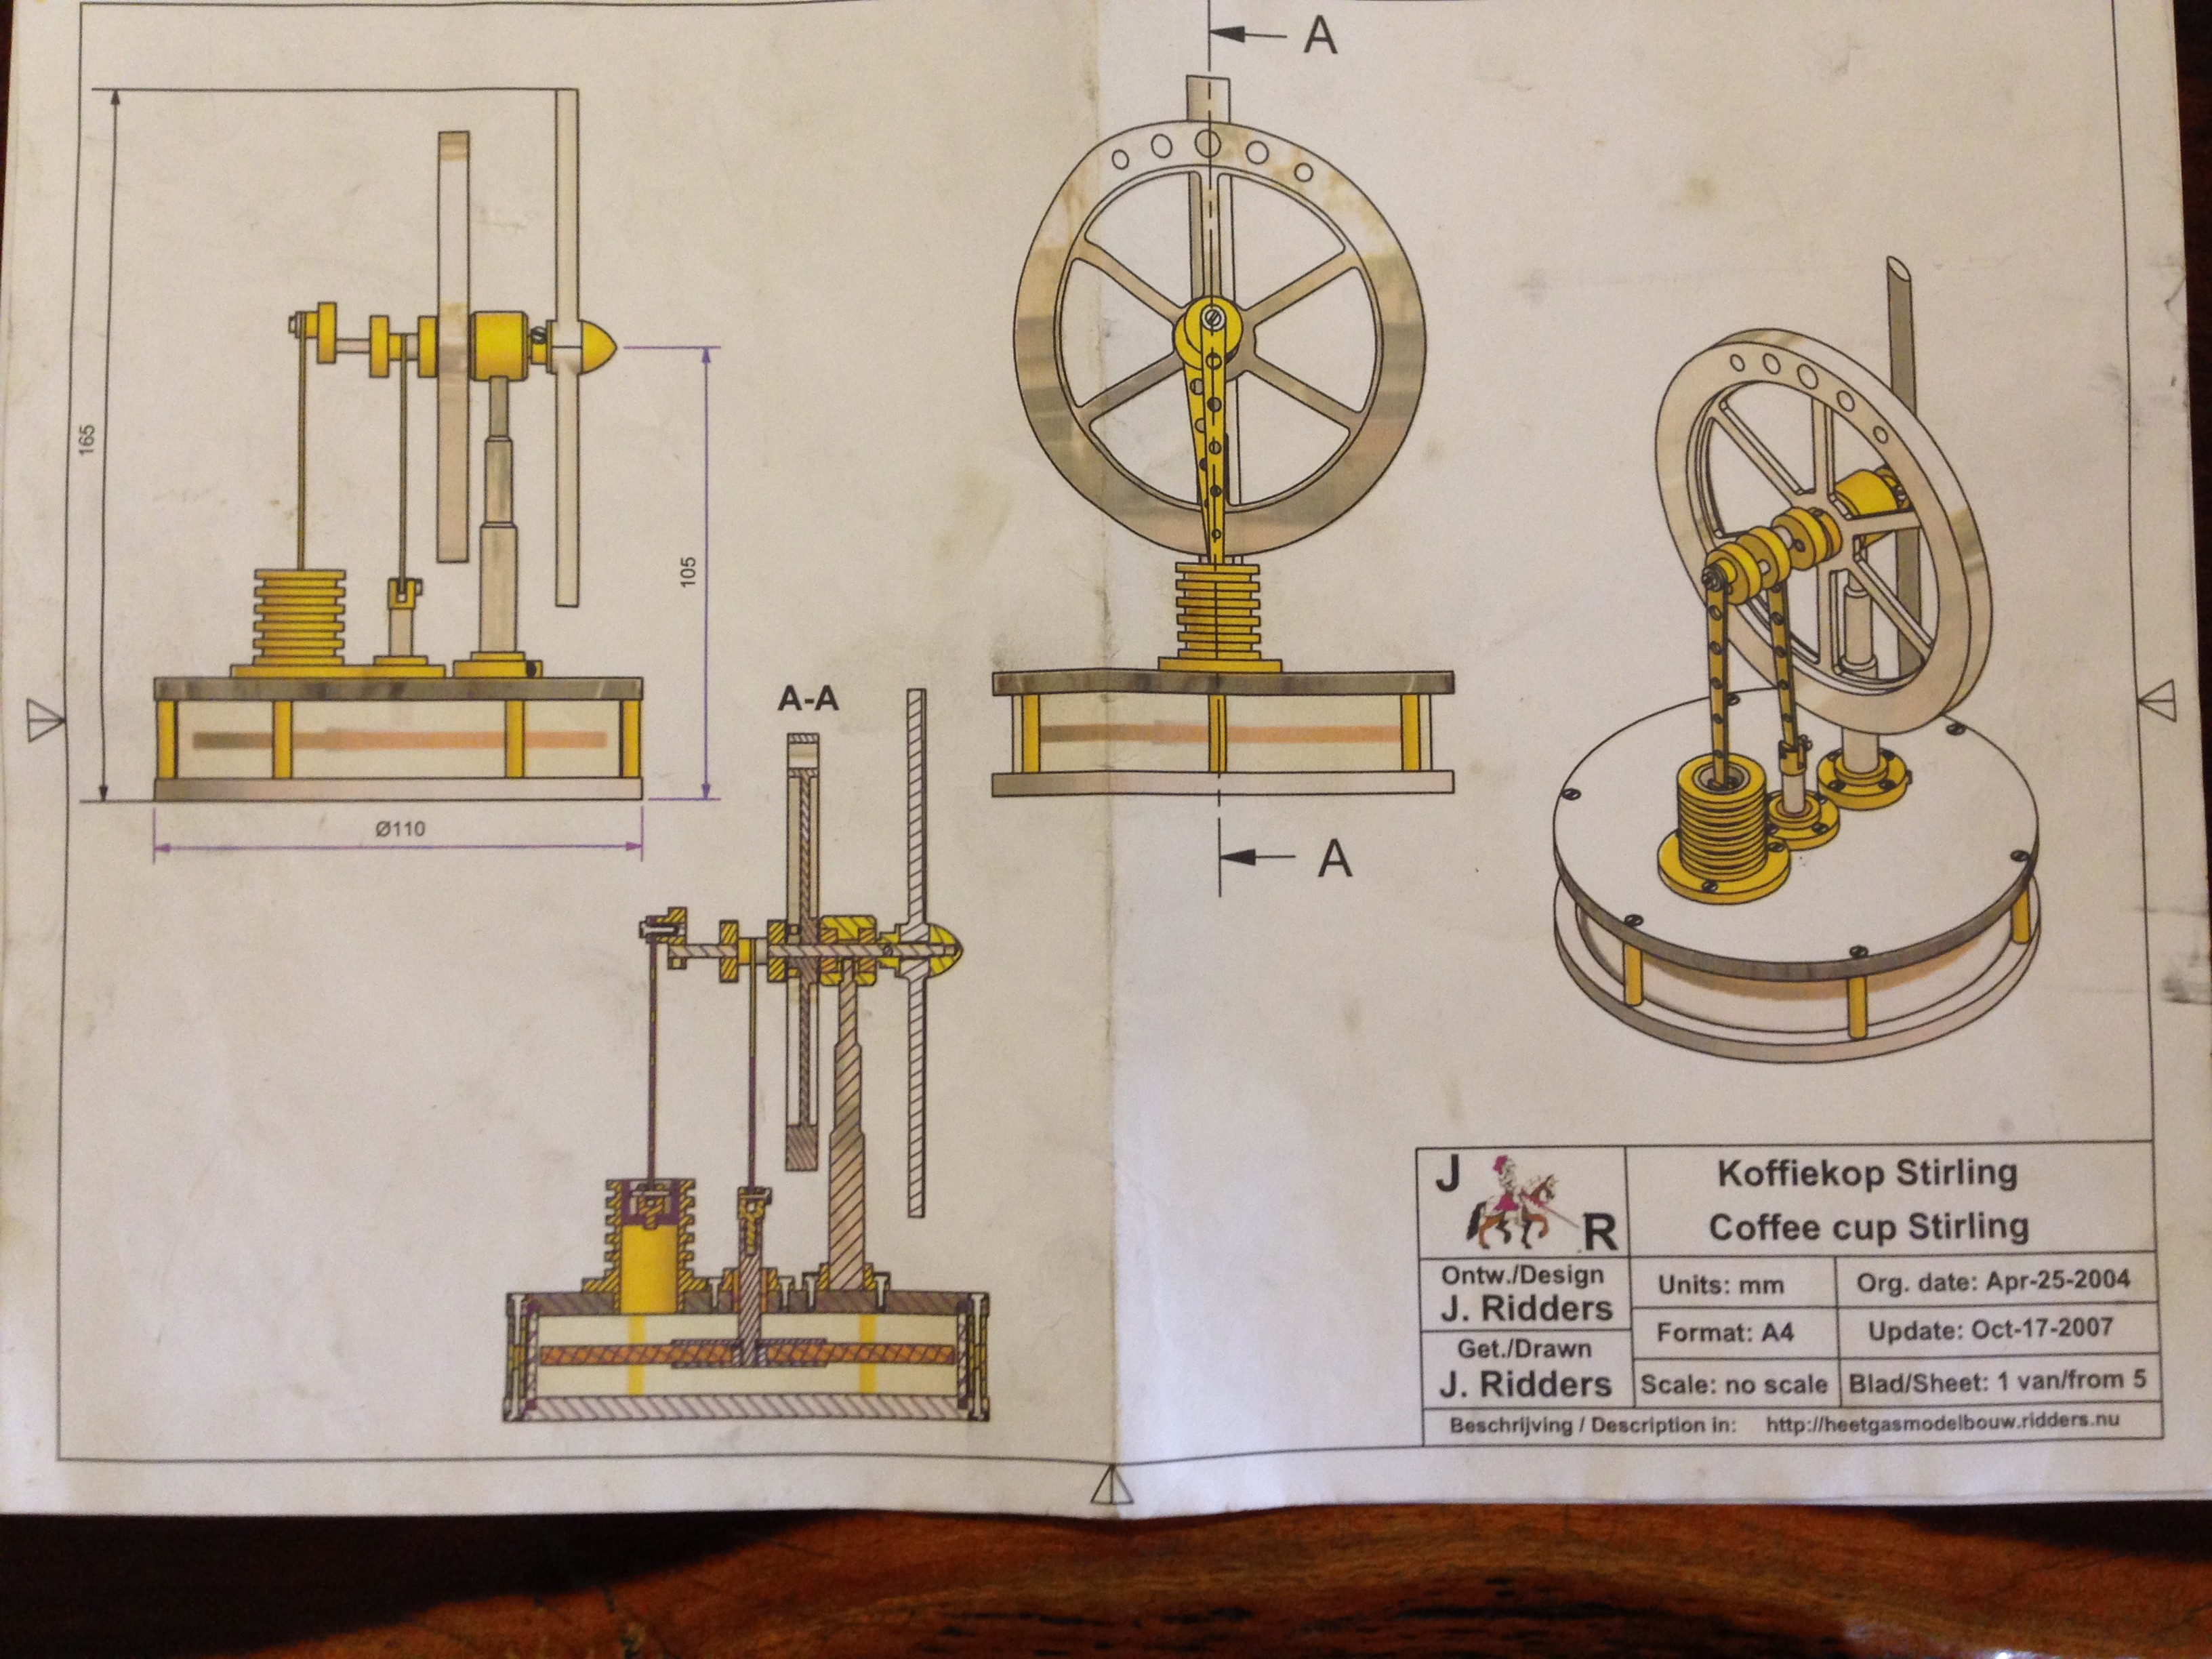 Koffiekop johnsmachines for Stirling engine plans design blueprints